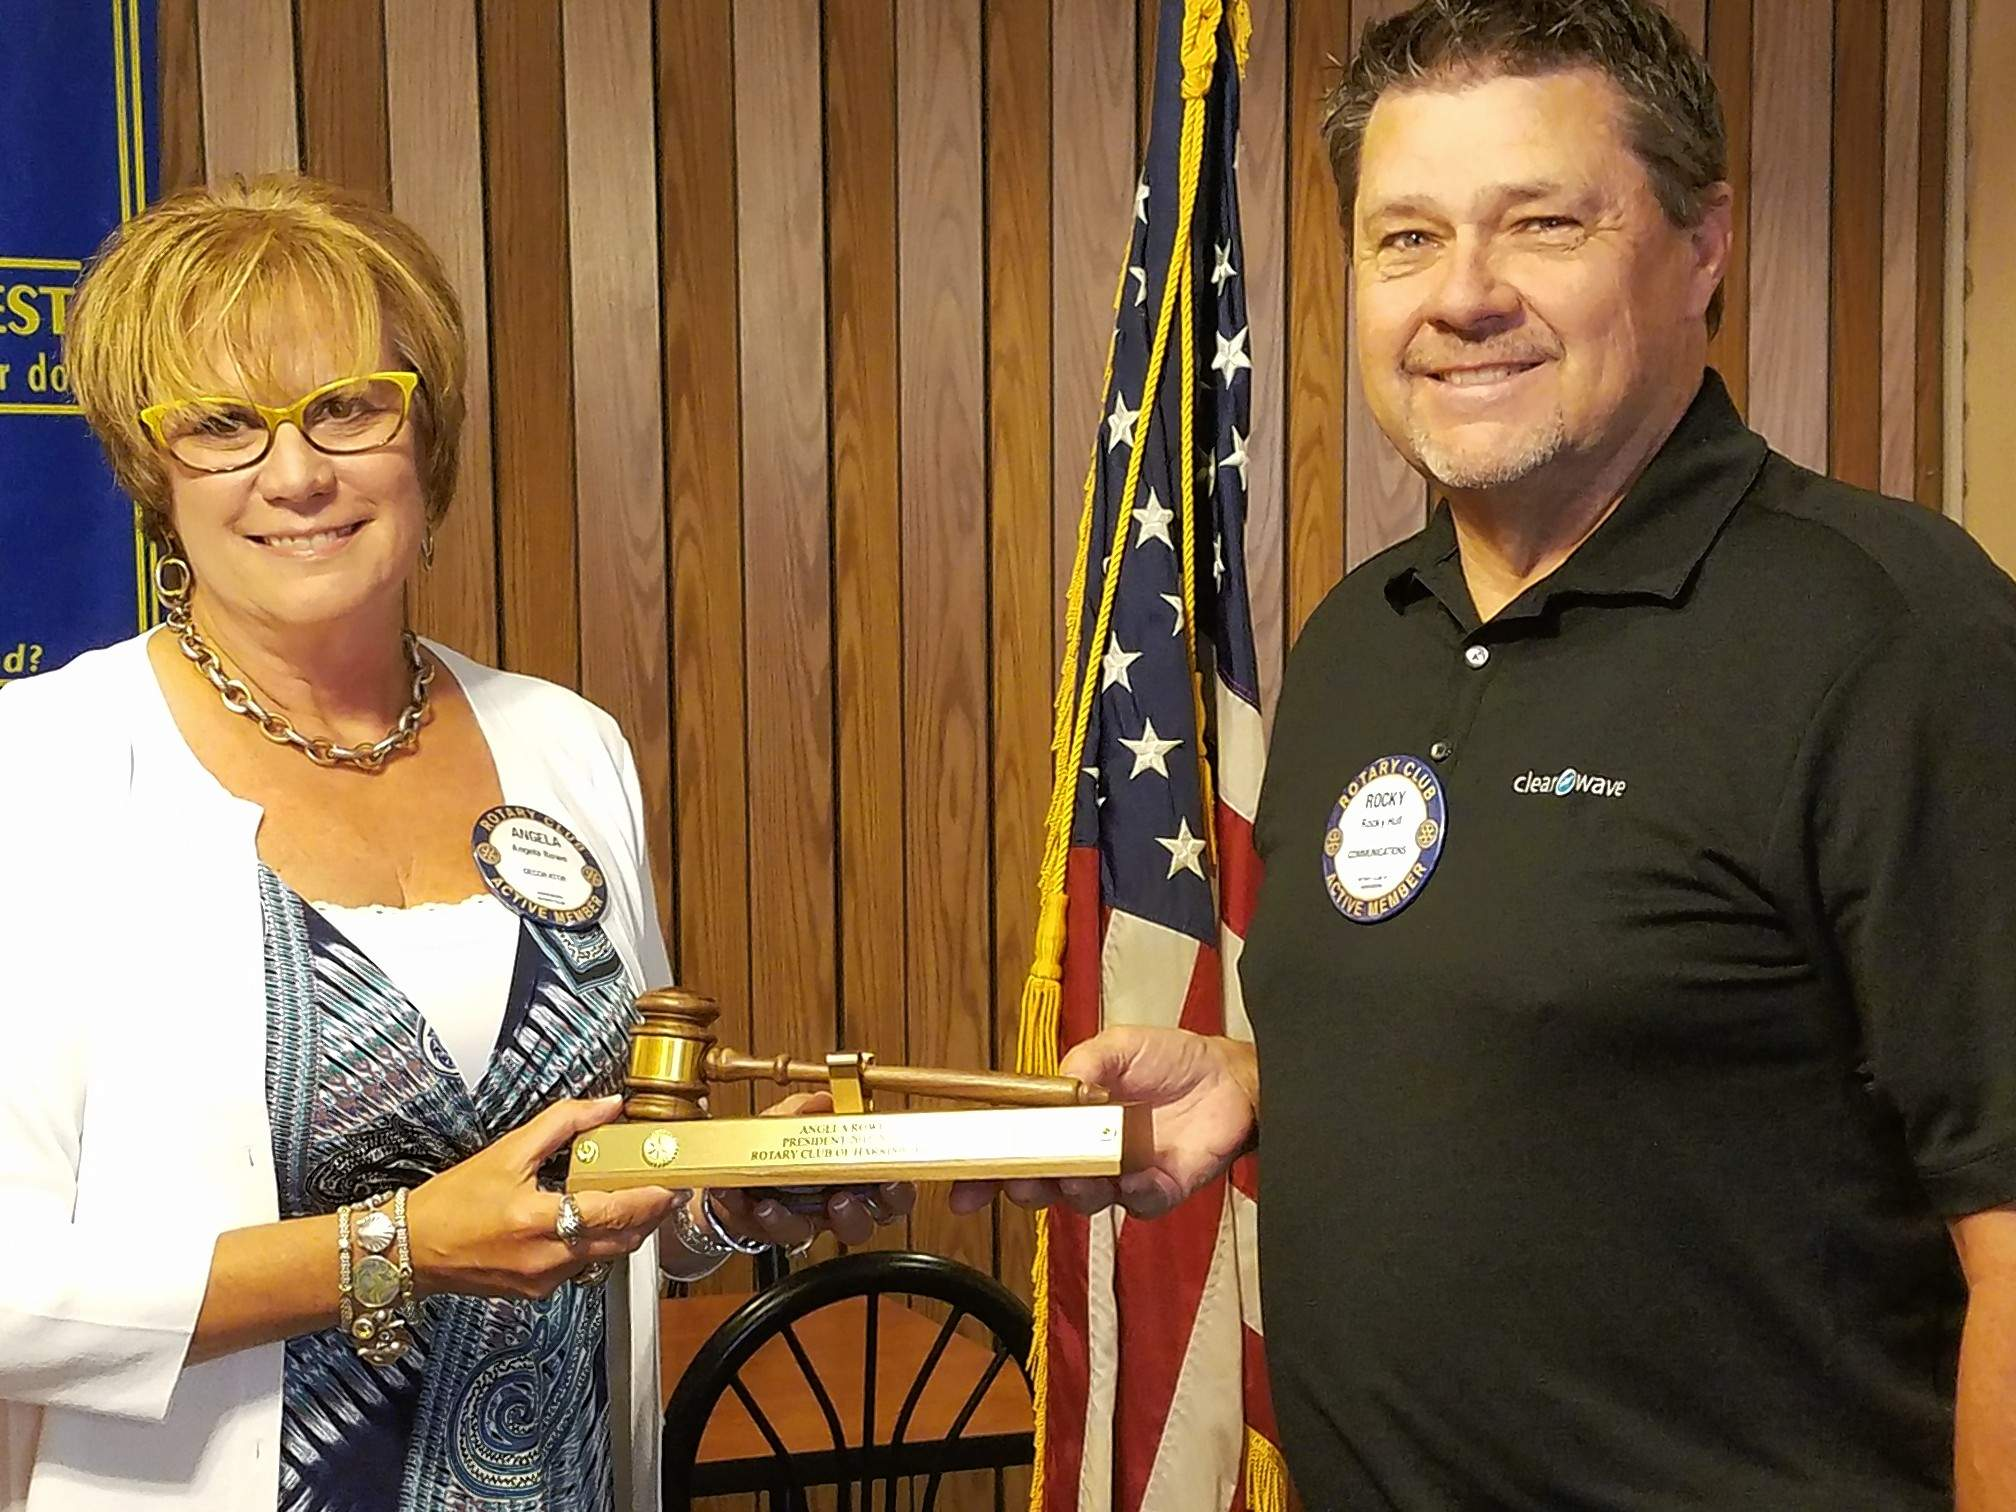 Angela Rowe is presented with a gavel plaque in honor of her two years of service as Harrisburg Rotary Club president. Presenting the award is club member Rocky Hull.